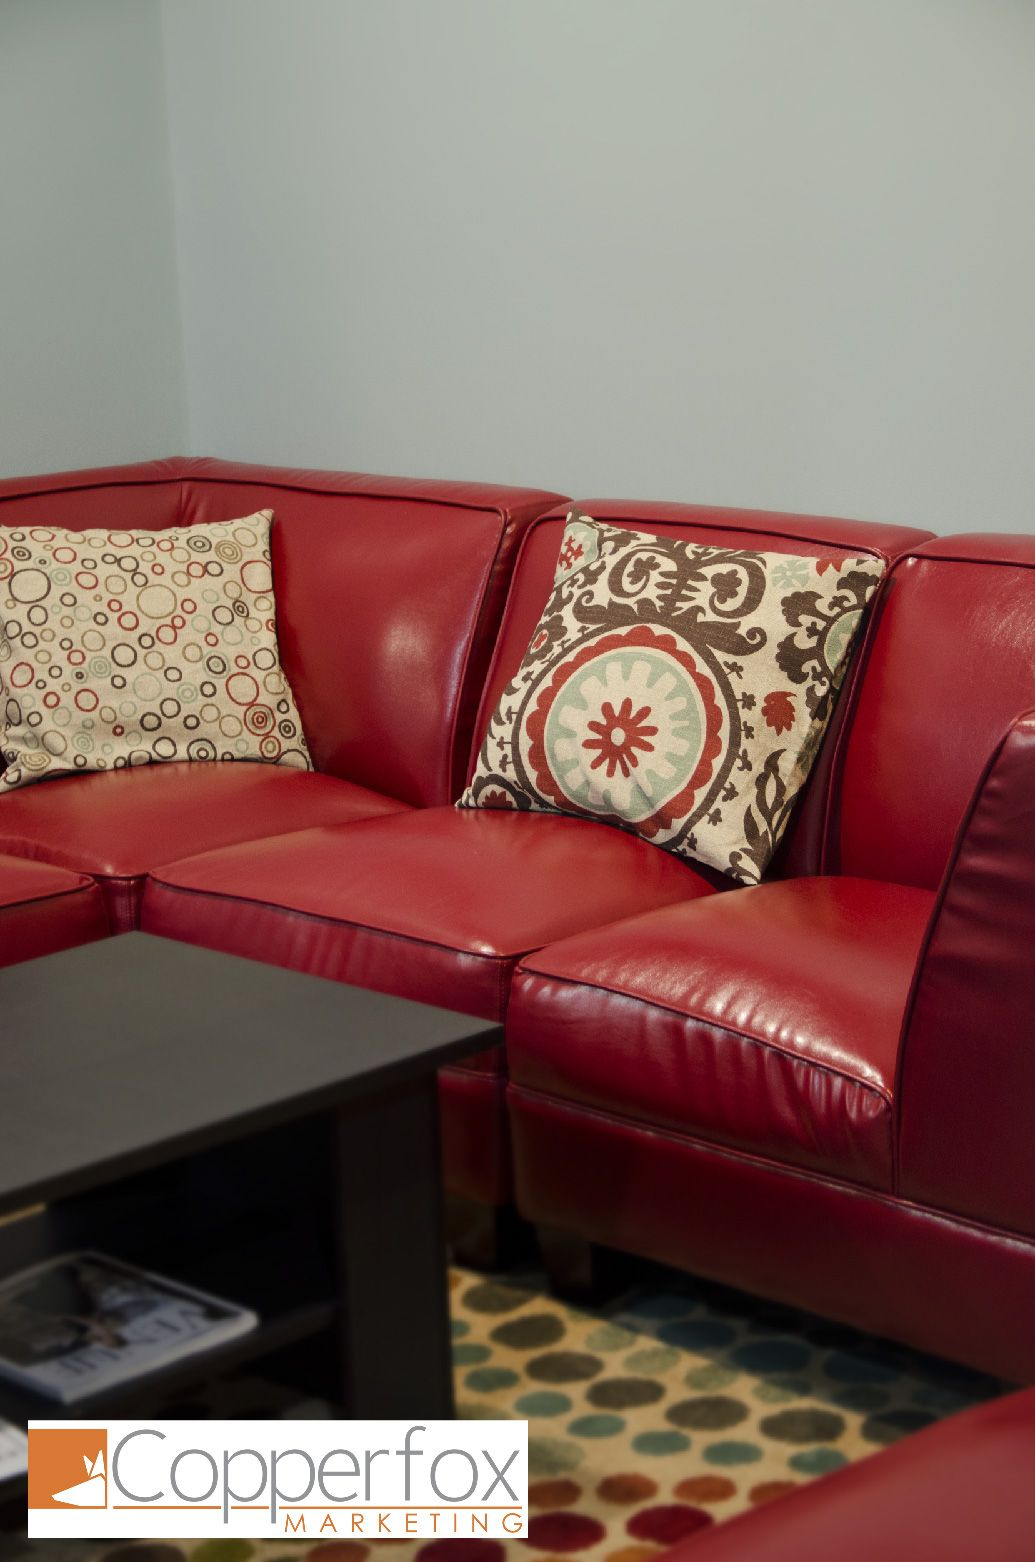 The Big Red Couch At The Copperfox Marketing Office